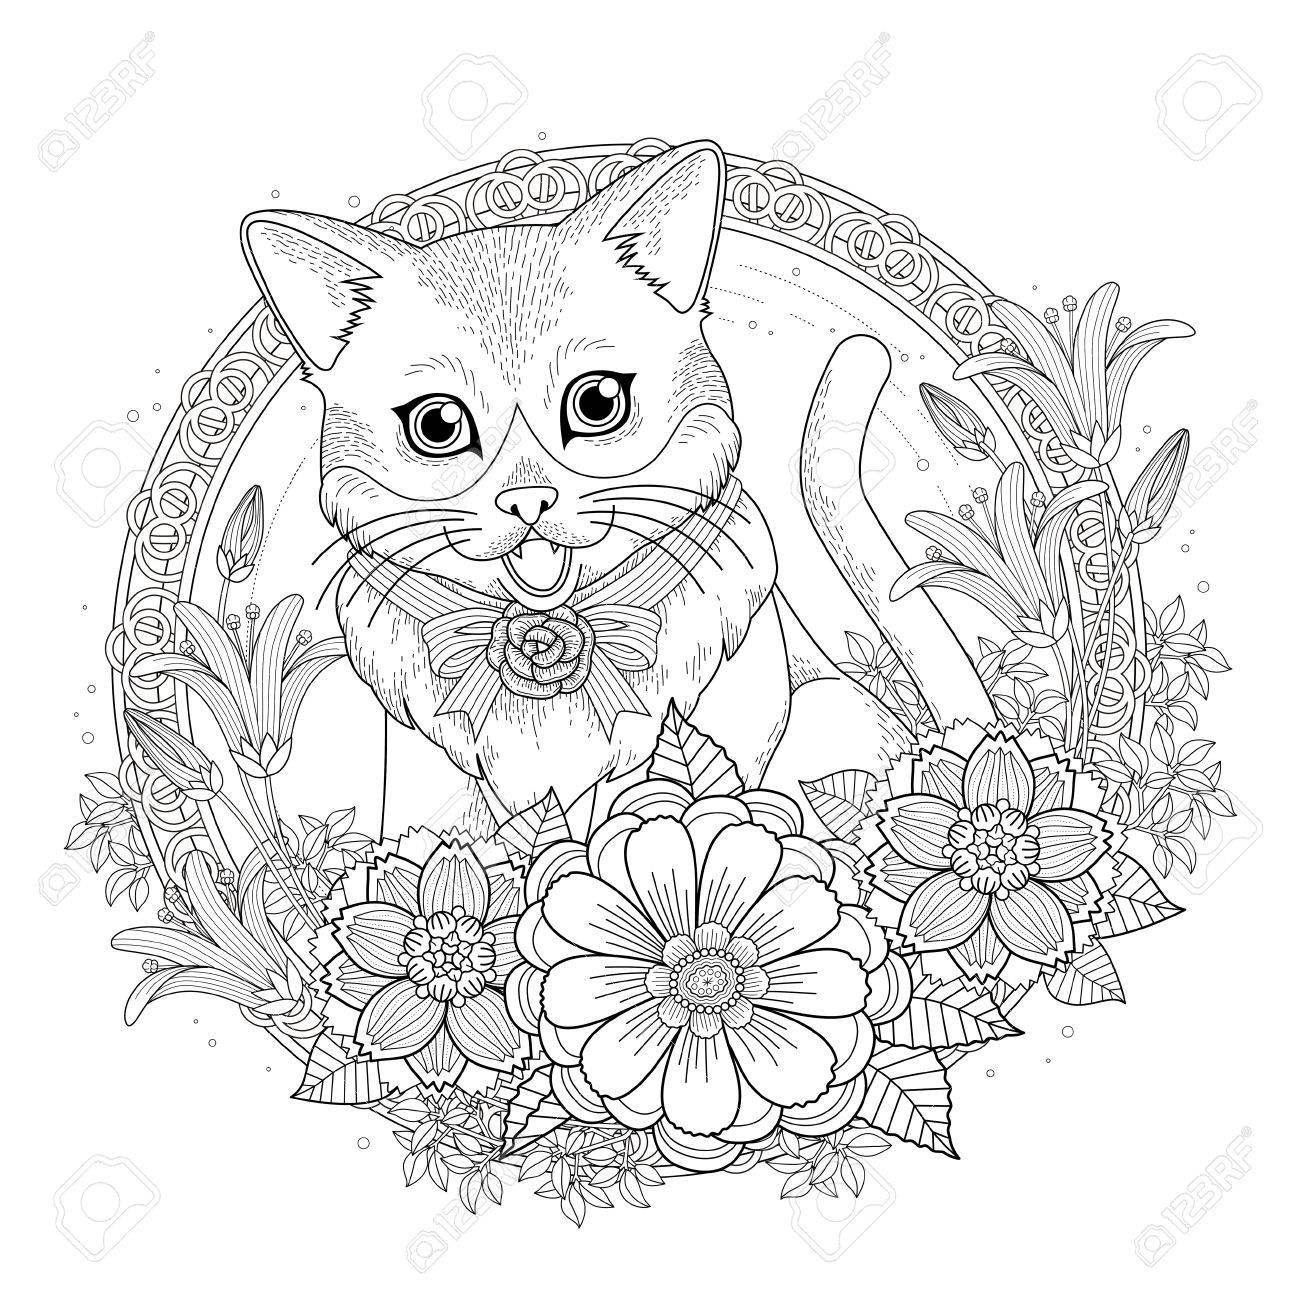 Adorable Kitty Coloring Page With Floral Wreath In Exquisite Kitty Coloring Animal Coloring Pages Coloring Pages [ 1300 x 1300 Pixel ]